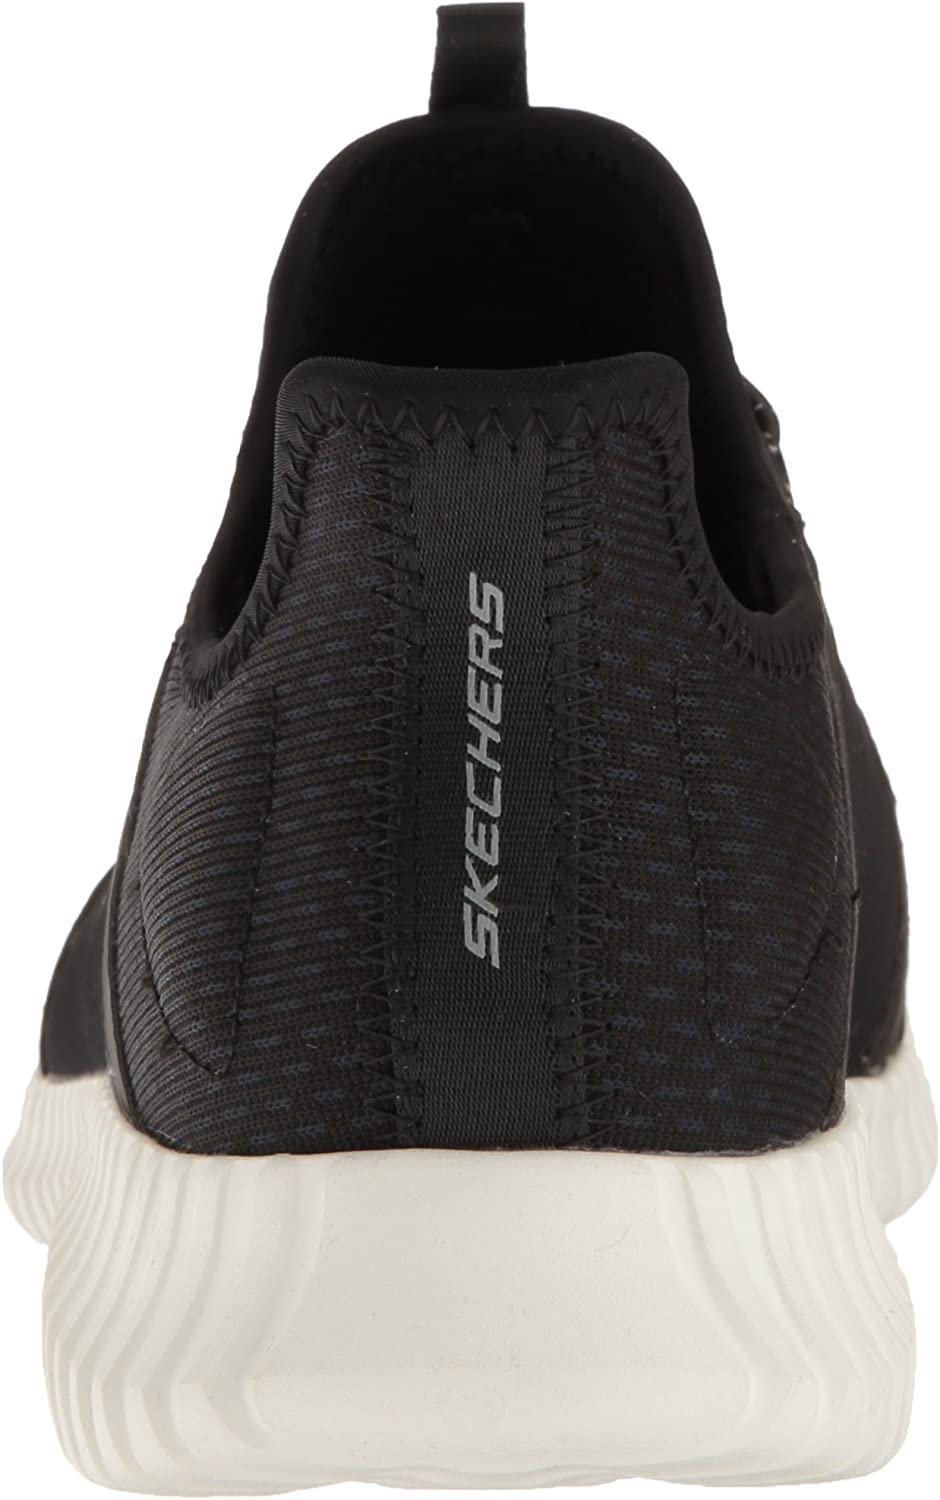 Skechers Herren Elite Flex-52640 Slip On Sneaker Schwarz Black Weiß